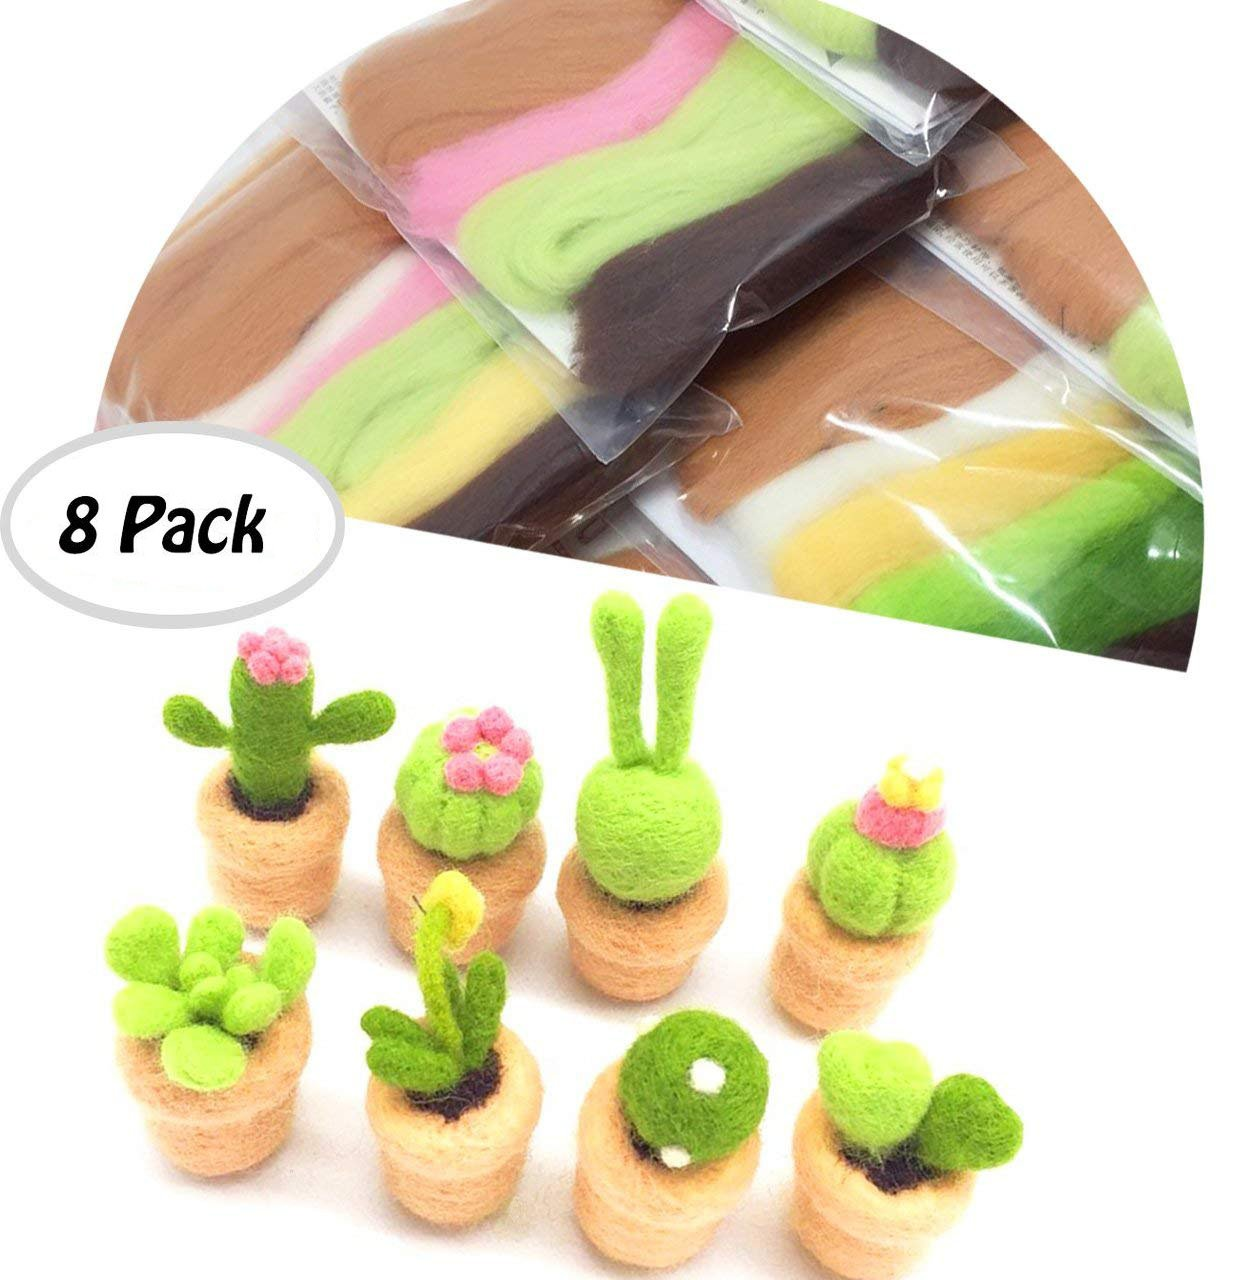 Felting Wool, Misscrafts 8 Pack Wool Roving Fibre Needle Felting Supplies in Succulent Plant Shapes with Felting Tool Kit and Instructions for DIY Felting Craft Beginner Set